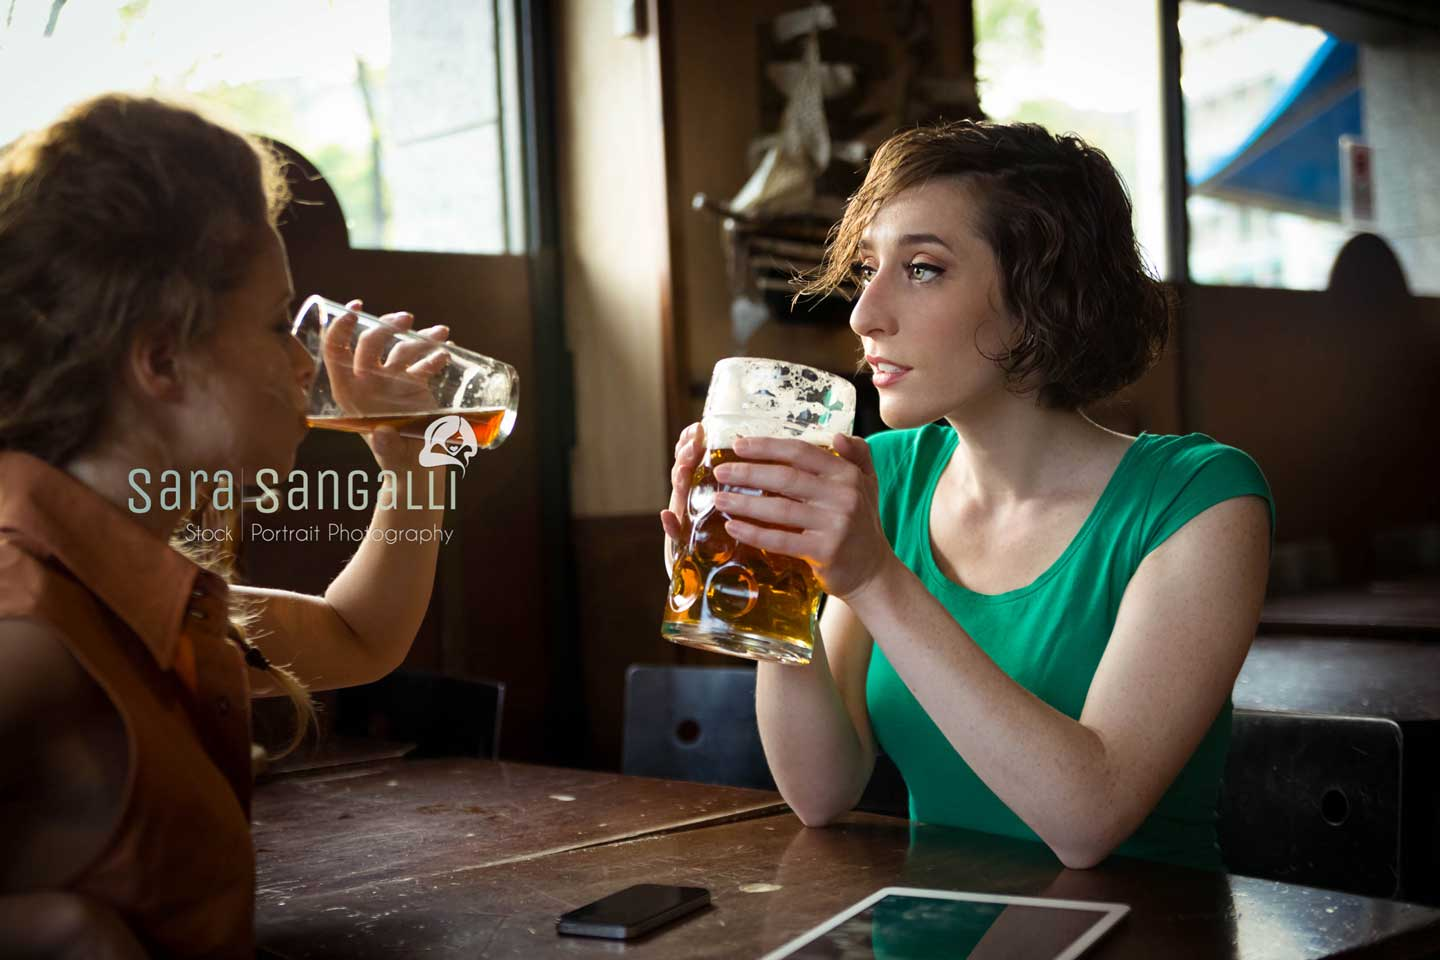 Two girls sitting at a pub table and drinking beer together